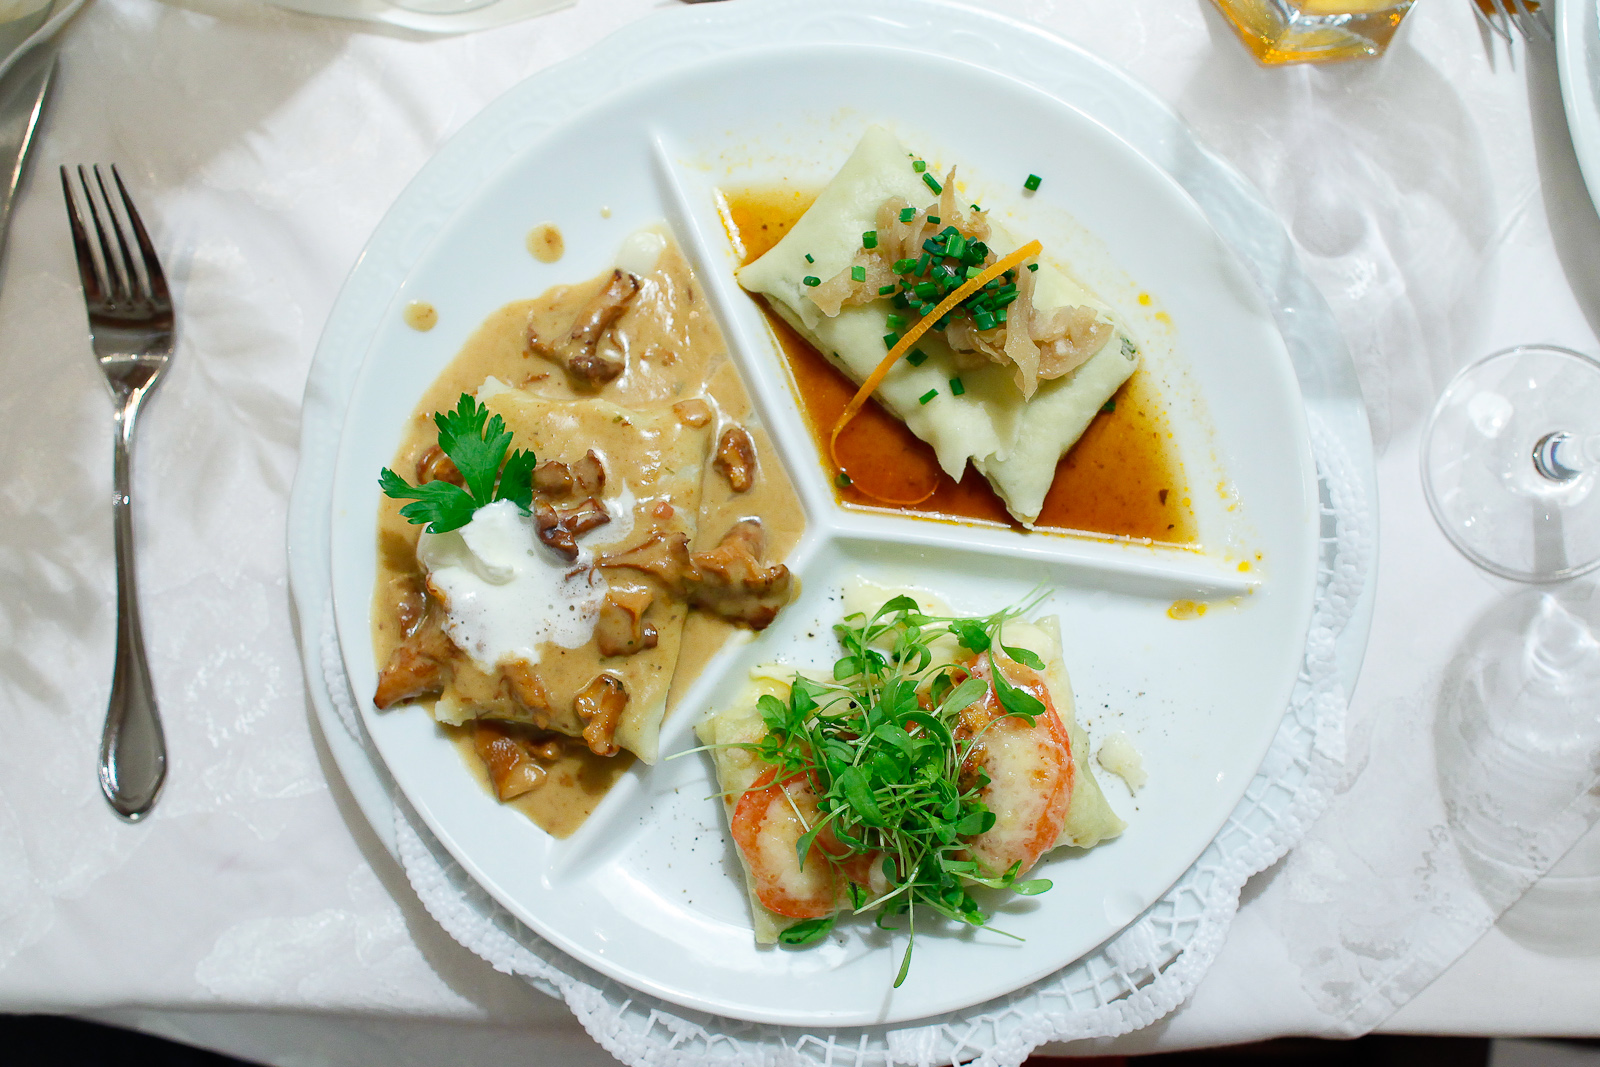 3rd Course: Variation of maultaschen, filled pasta squares